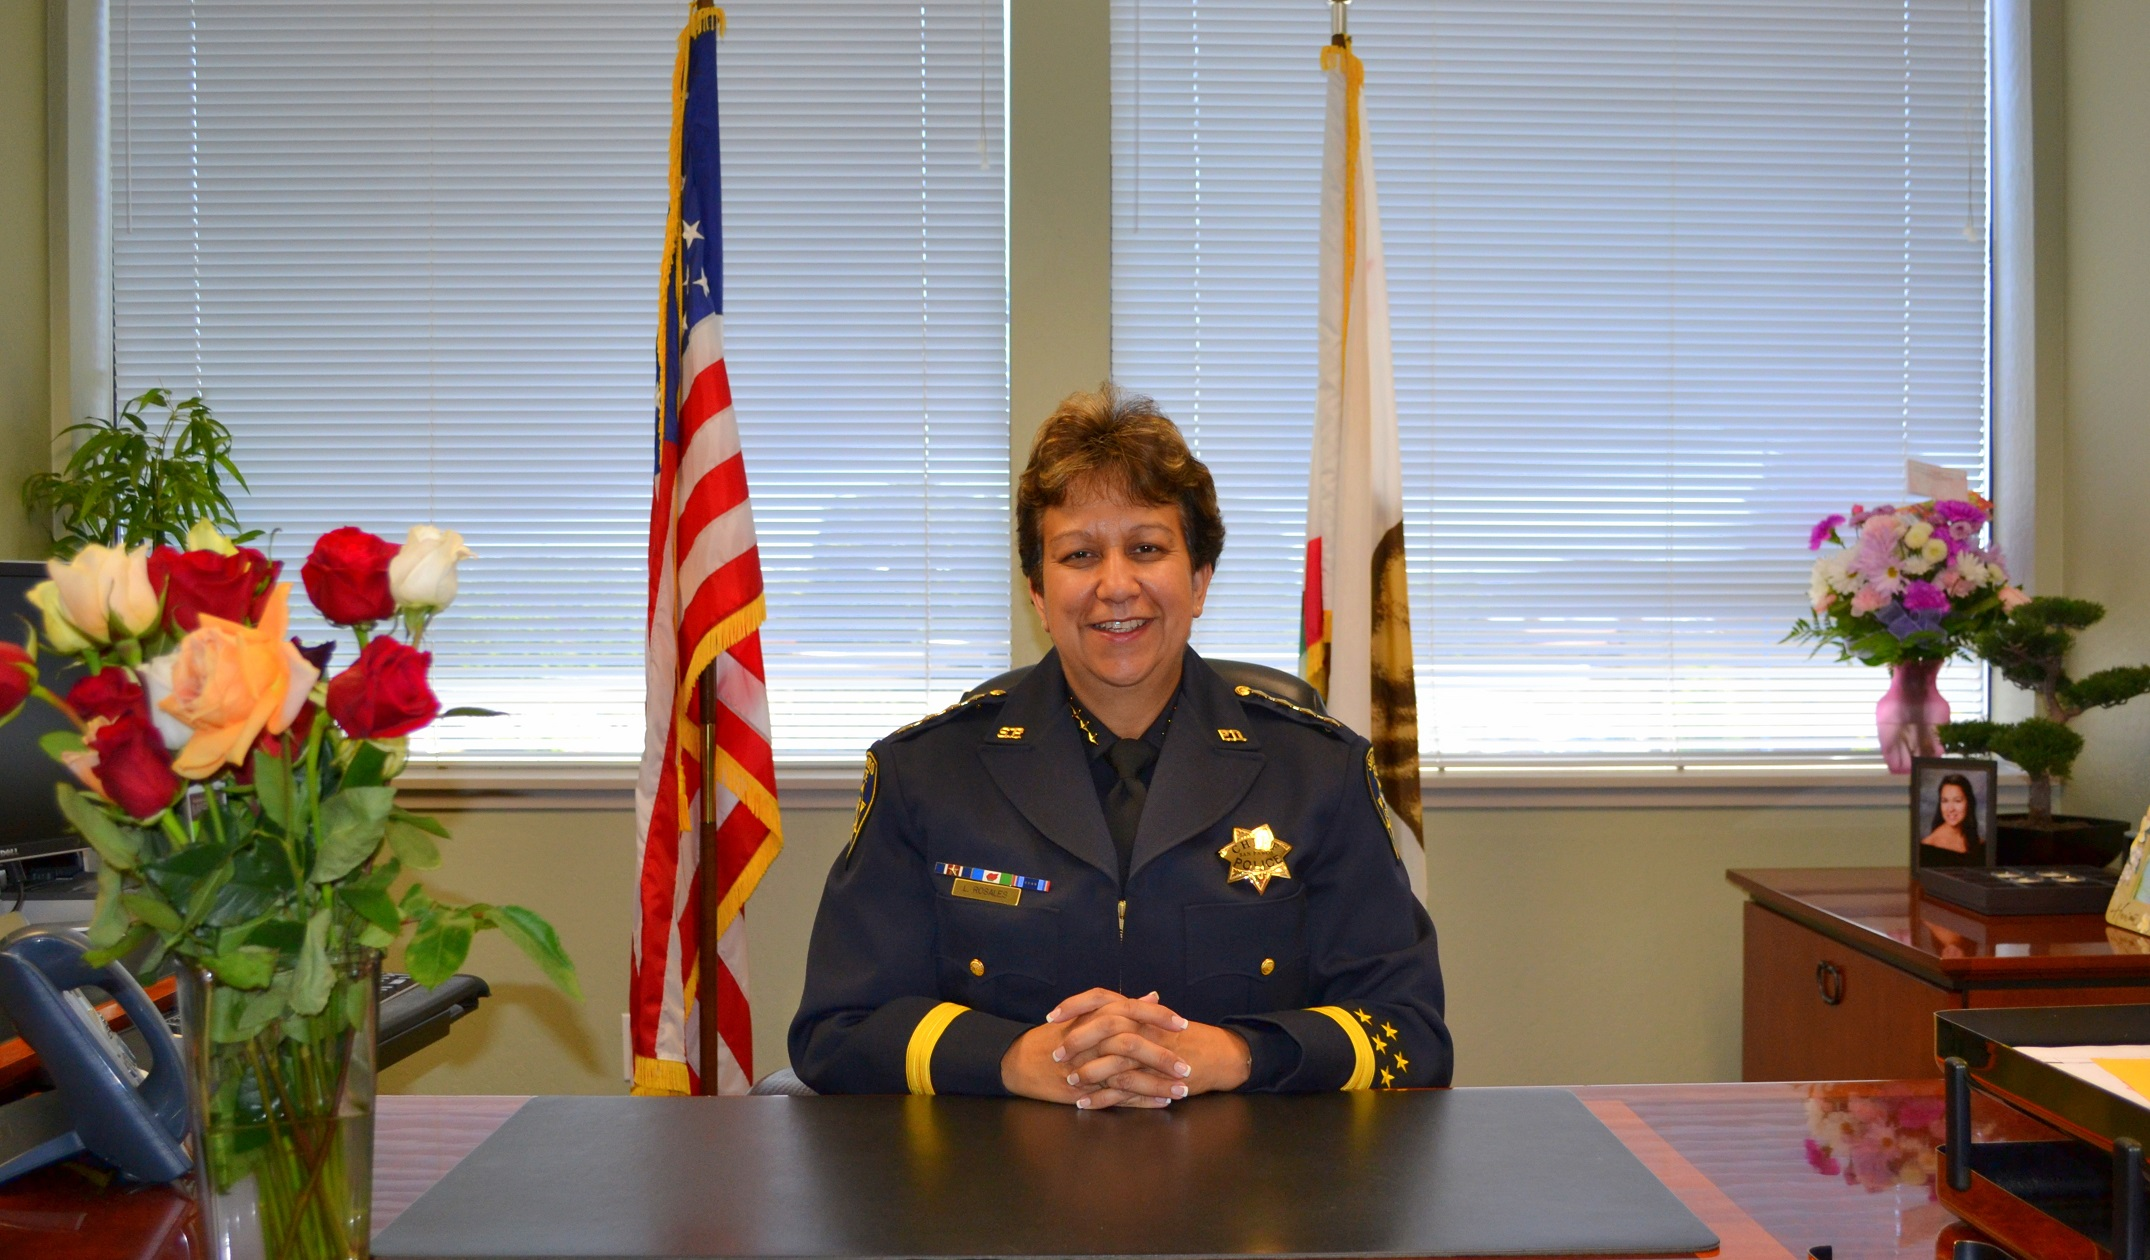 Chief Rosales Admin Pic Website Photo.jpg